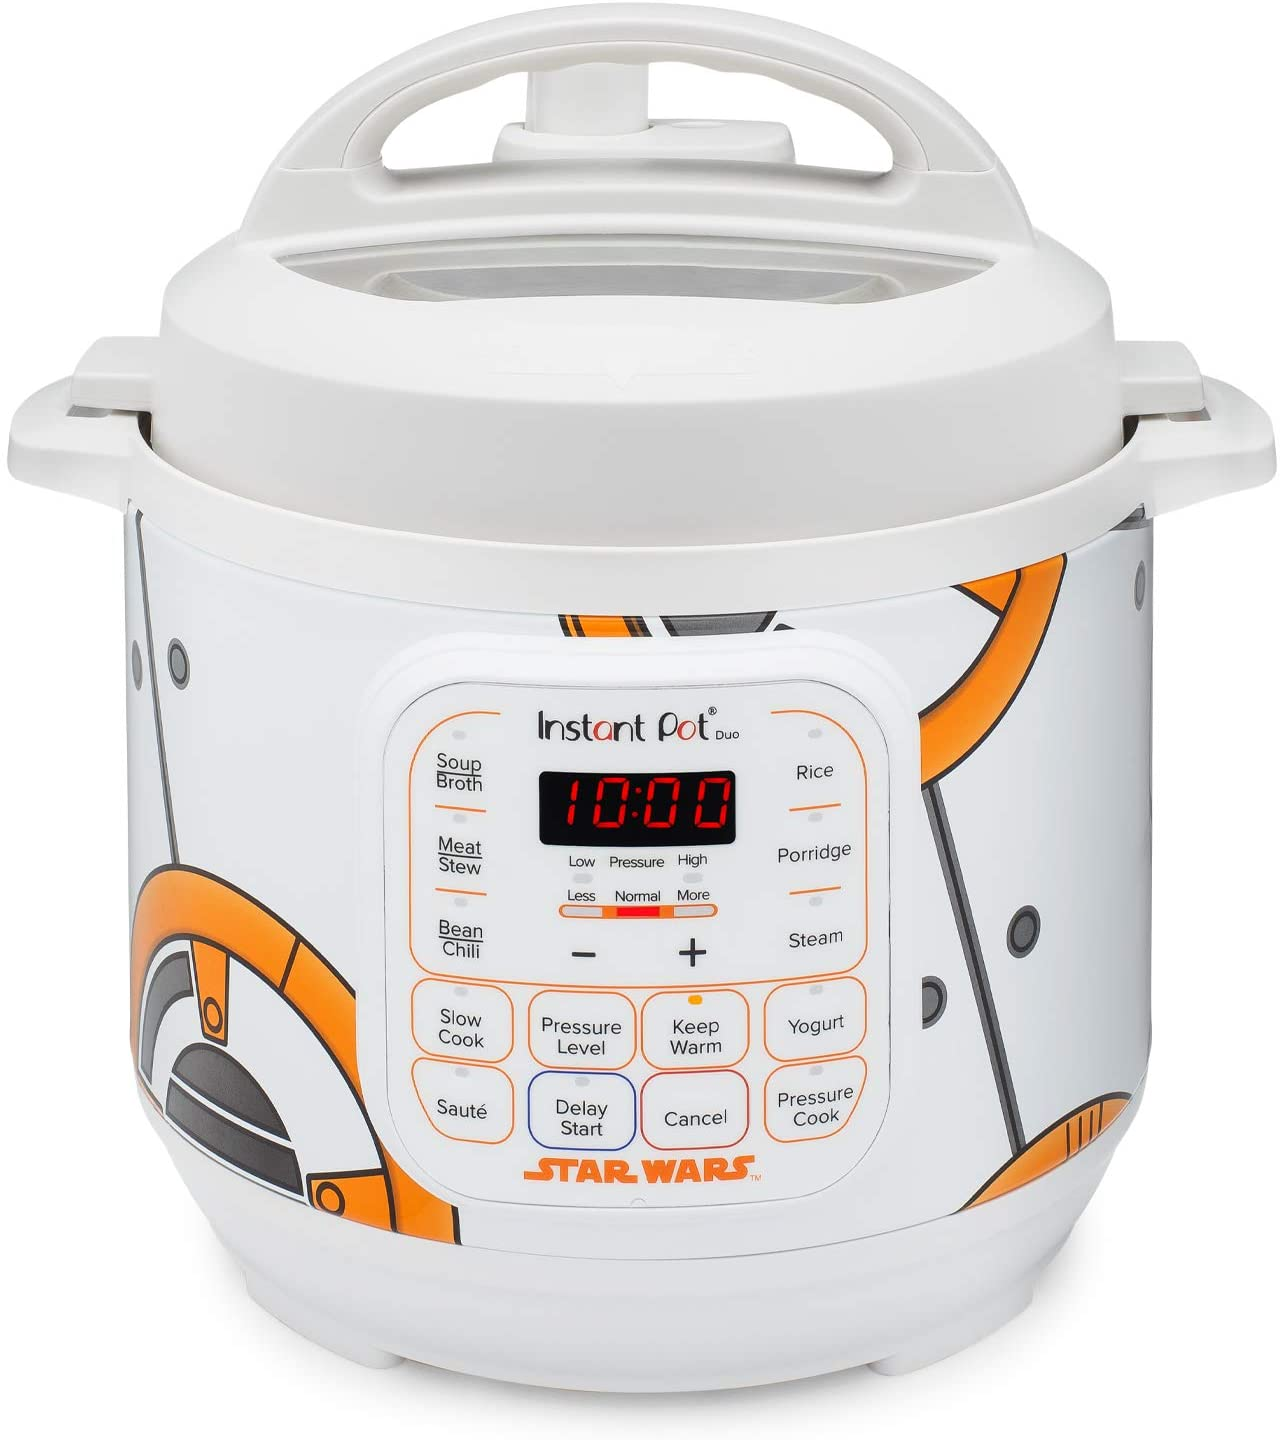 Instant Pot 110-0033-01 3Qt Star Wars Duo Mini 3-Qt. Pressure Cooker, White-BB-8